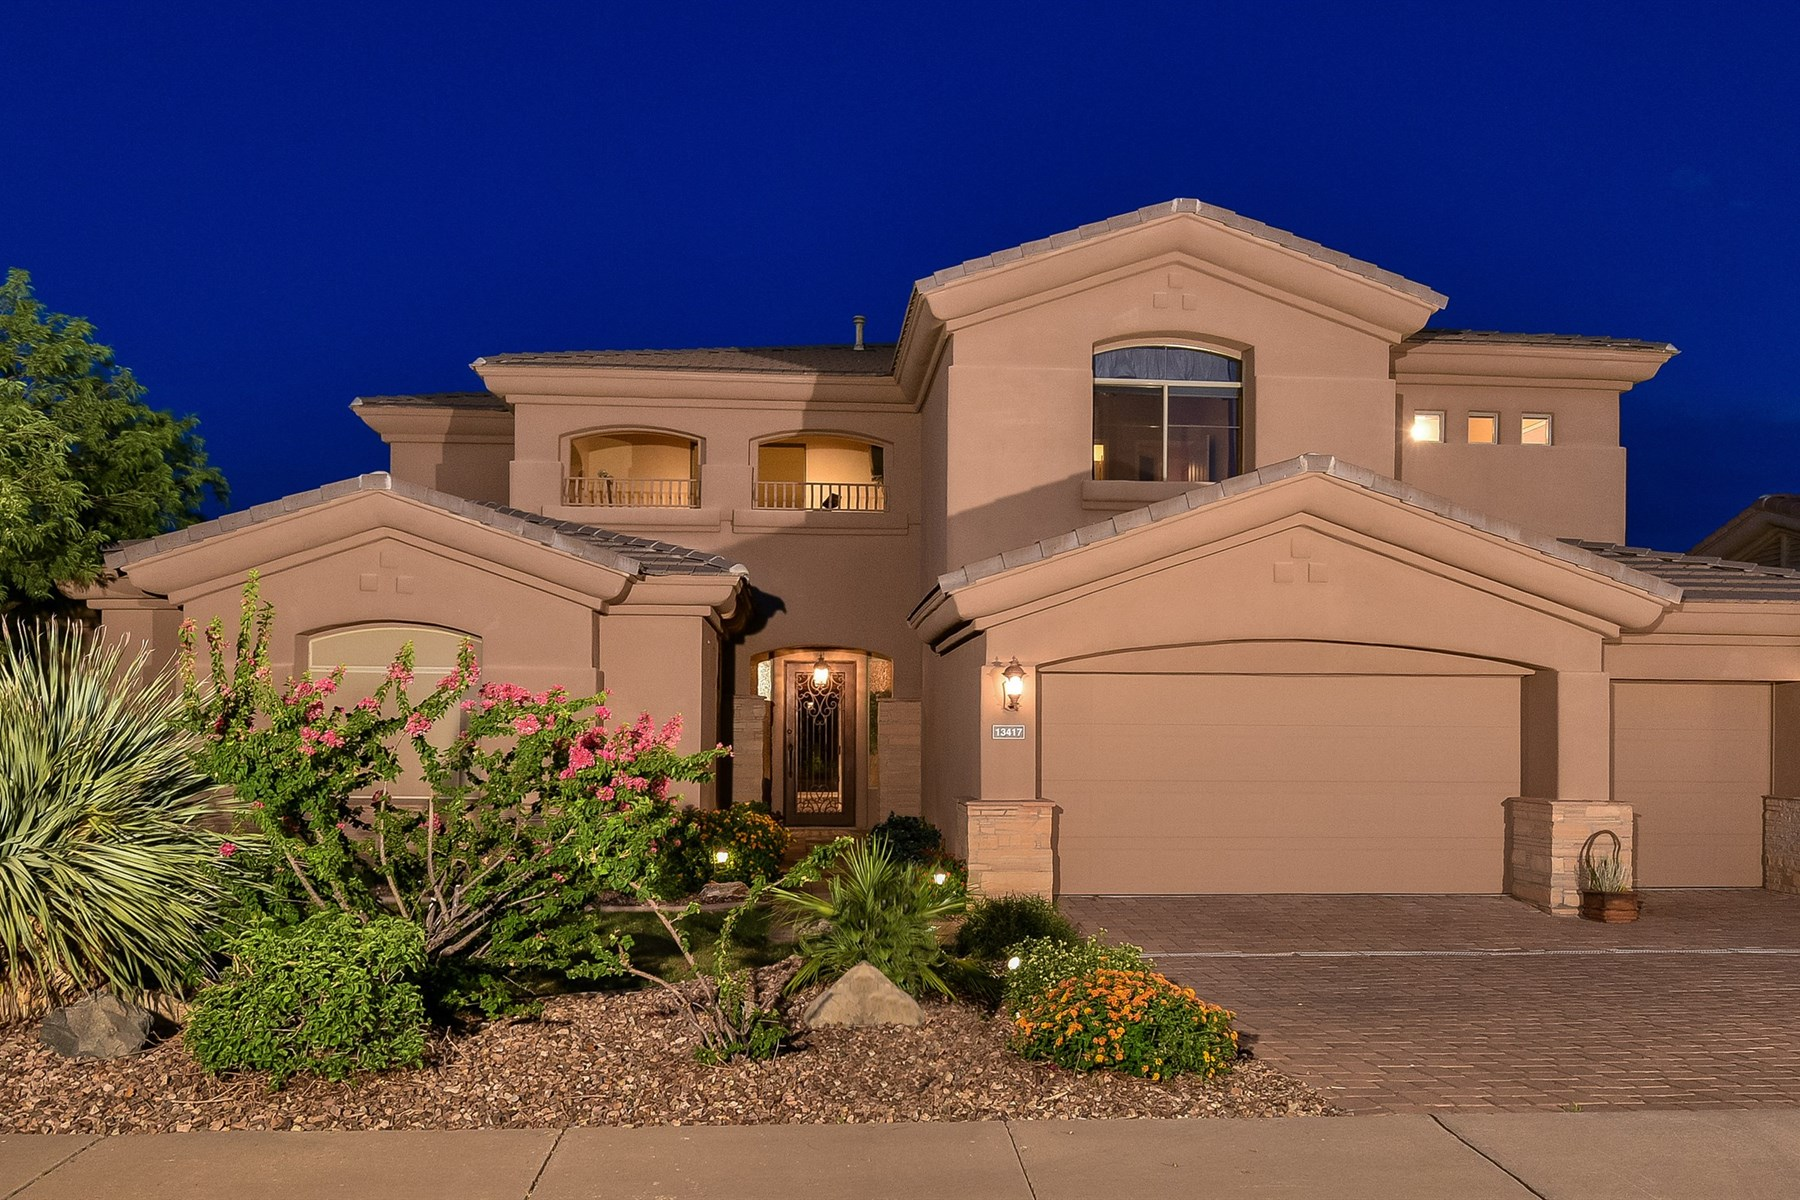 Property For Sale at You can be on vacation every day in your new home with golf and mountain views.